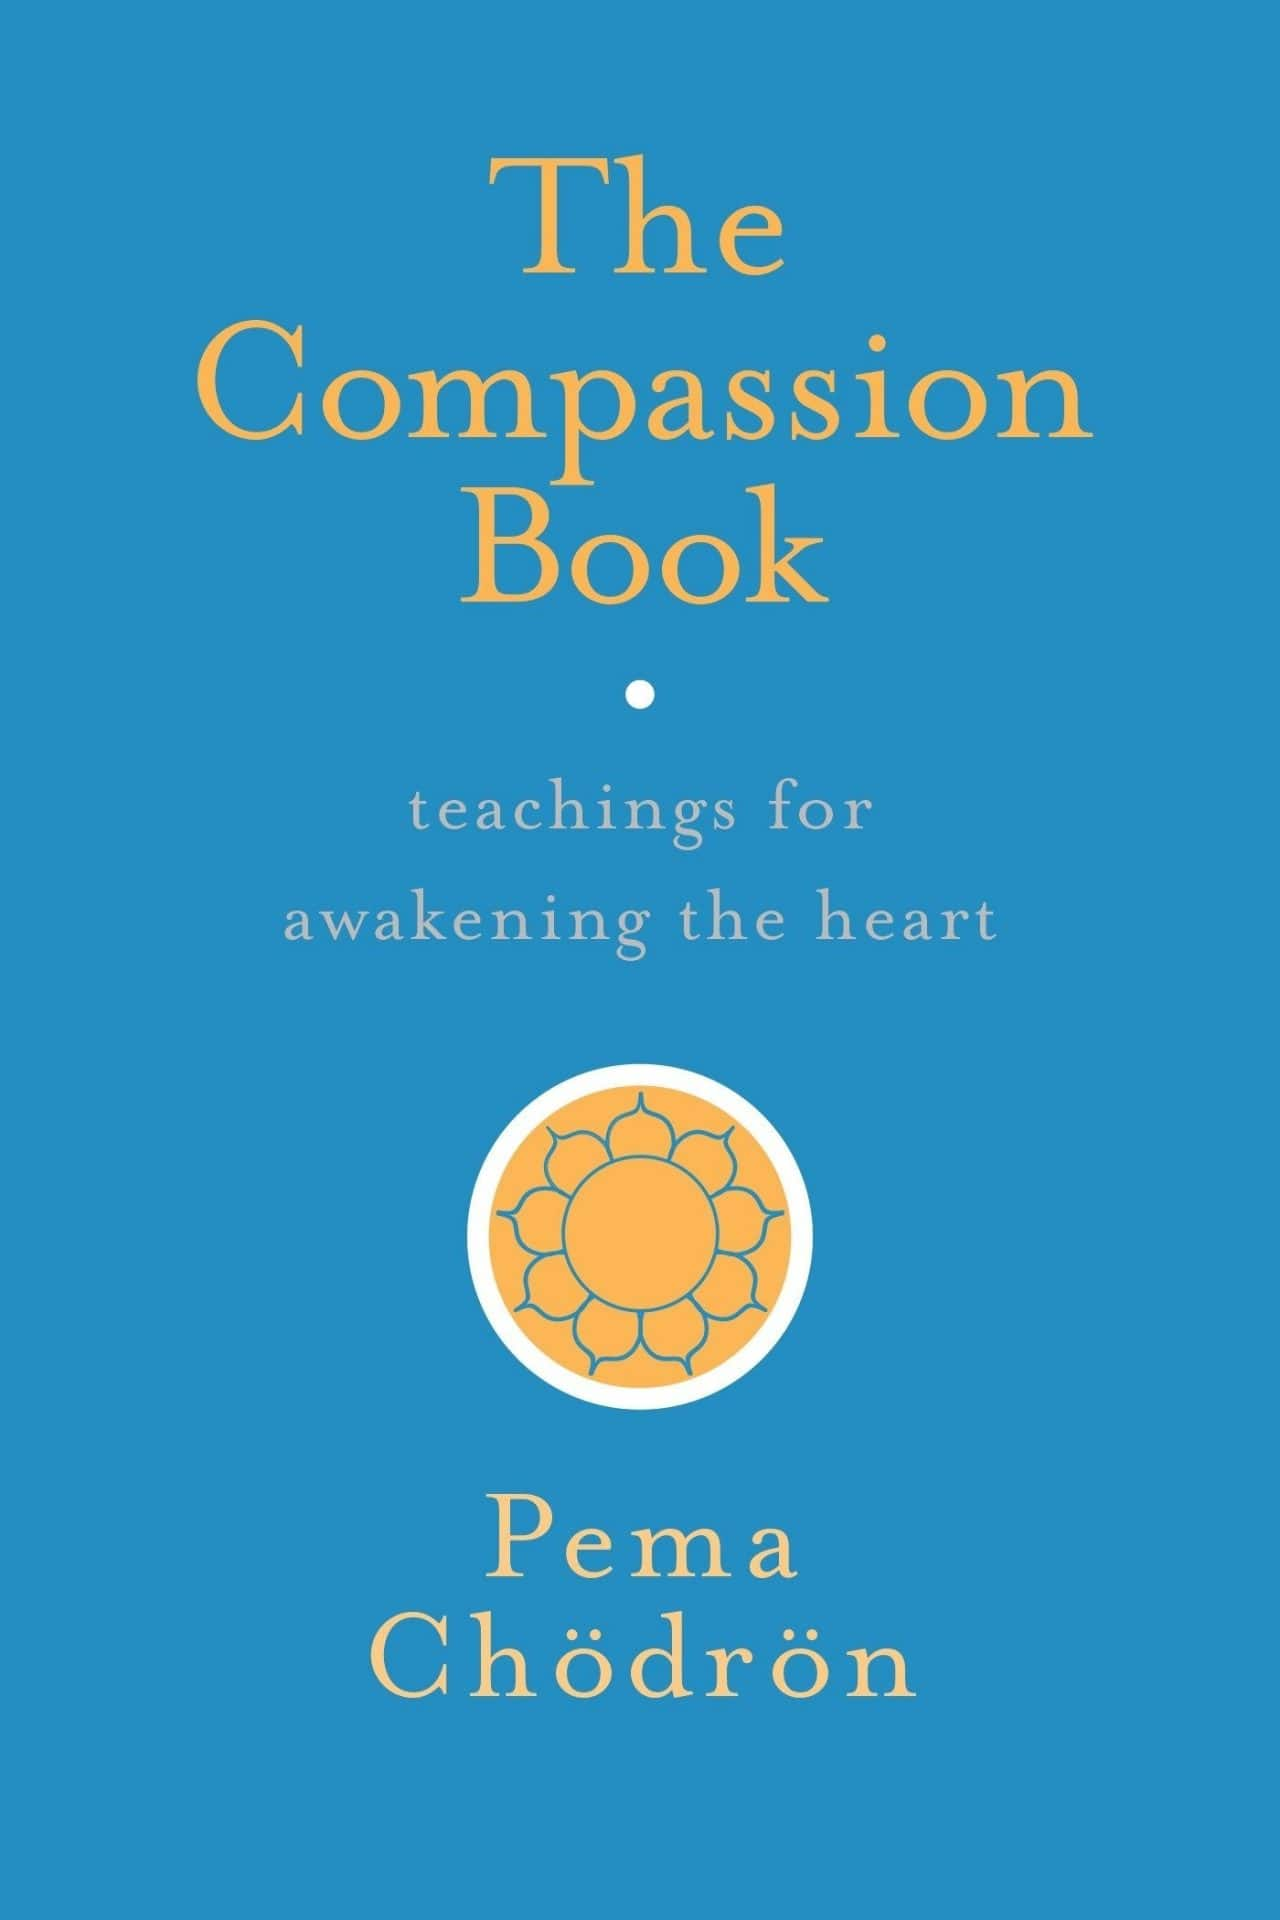 The Compassion Book: Teaching For Awakening The Heart